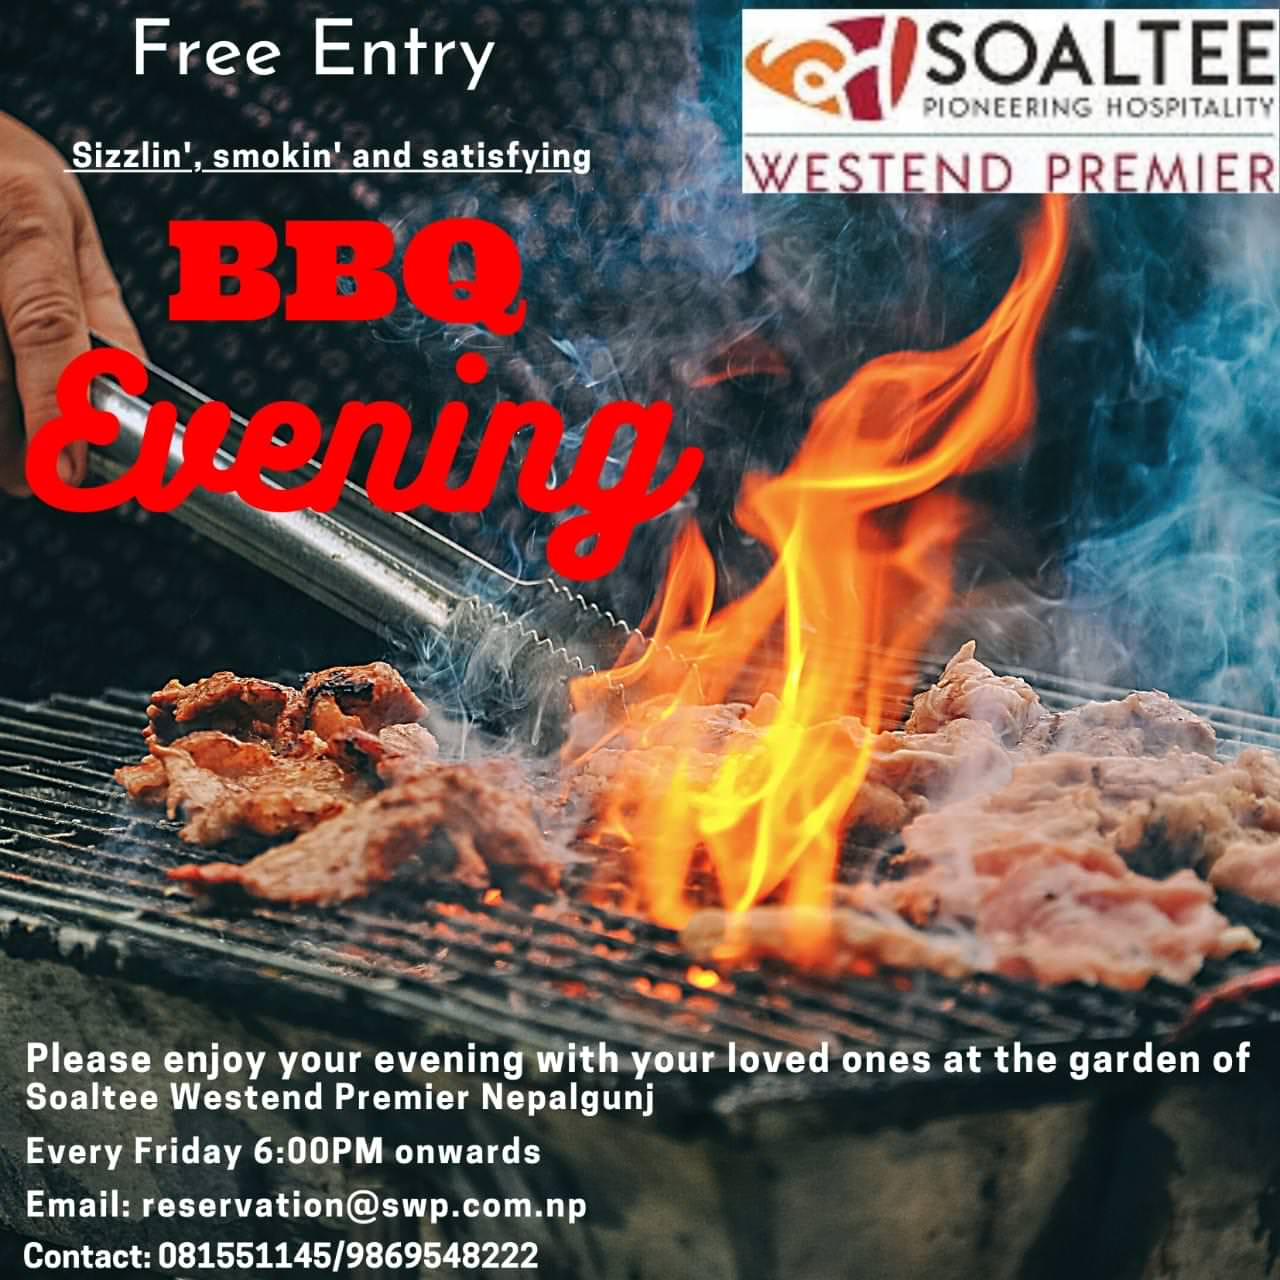 Soaltee Westend Premier Barbicue Time Every Friday